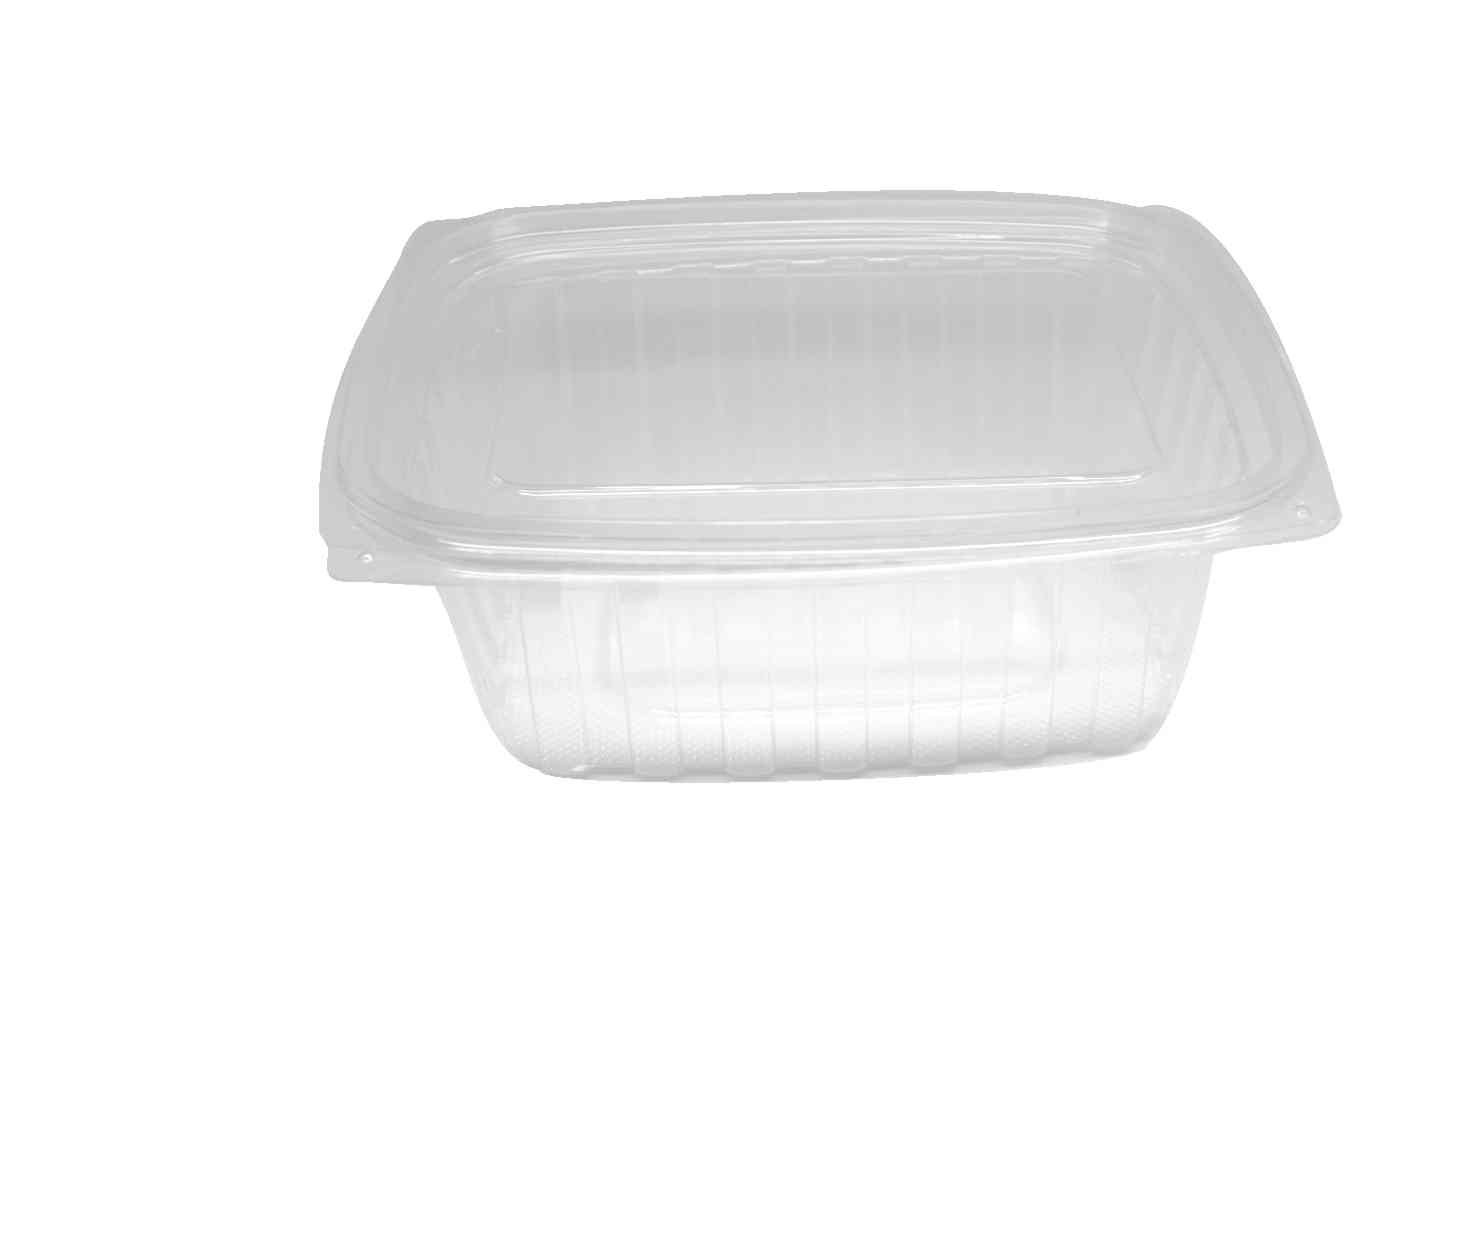 Choice-Pac L1D-2064 Polyethylene Terephthalate Rectangular 2-Piece Cold Deli Container, 9